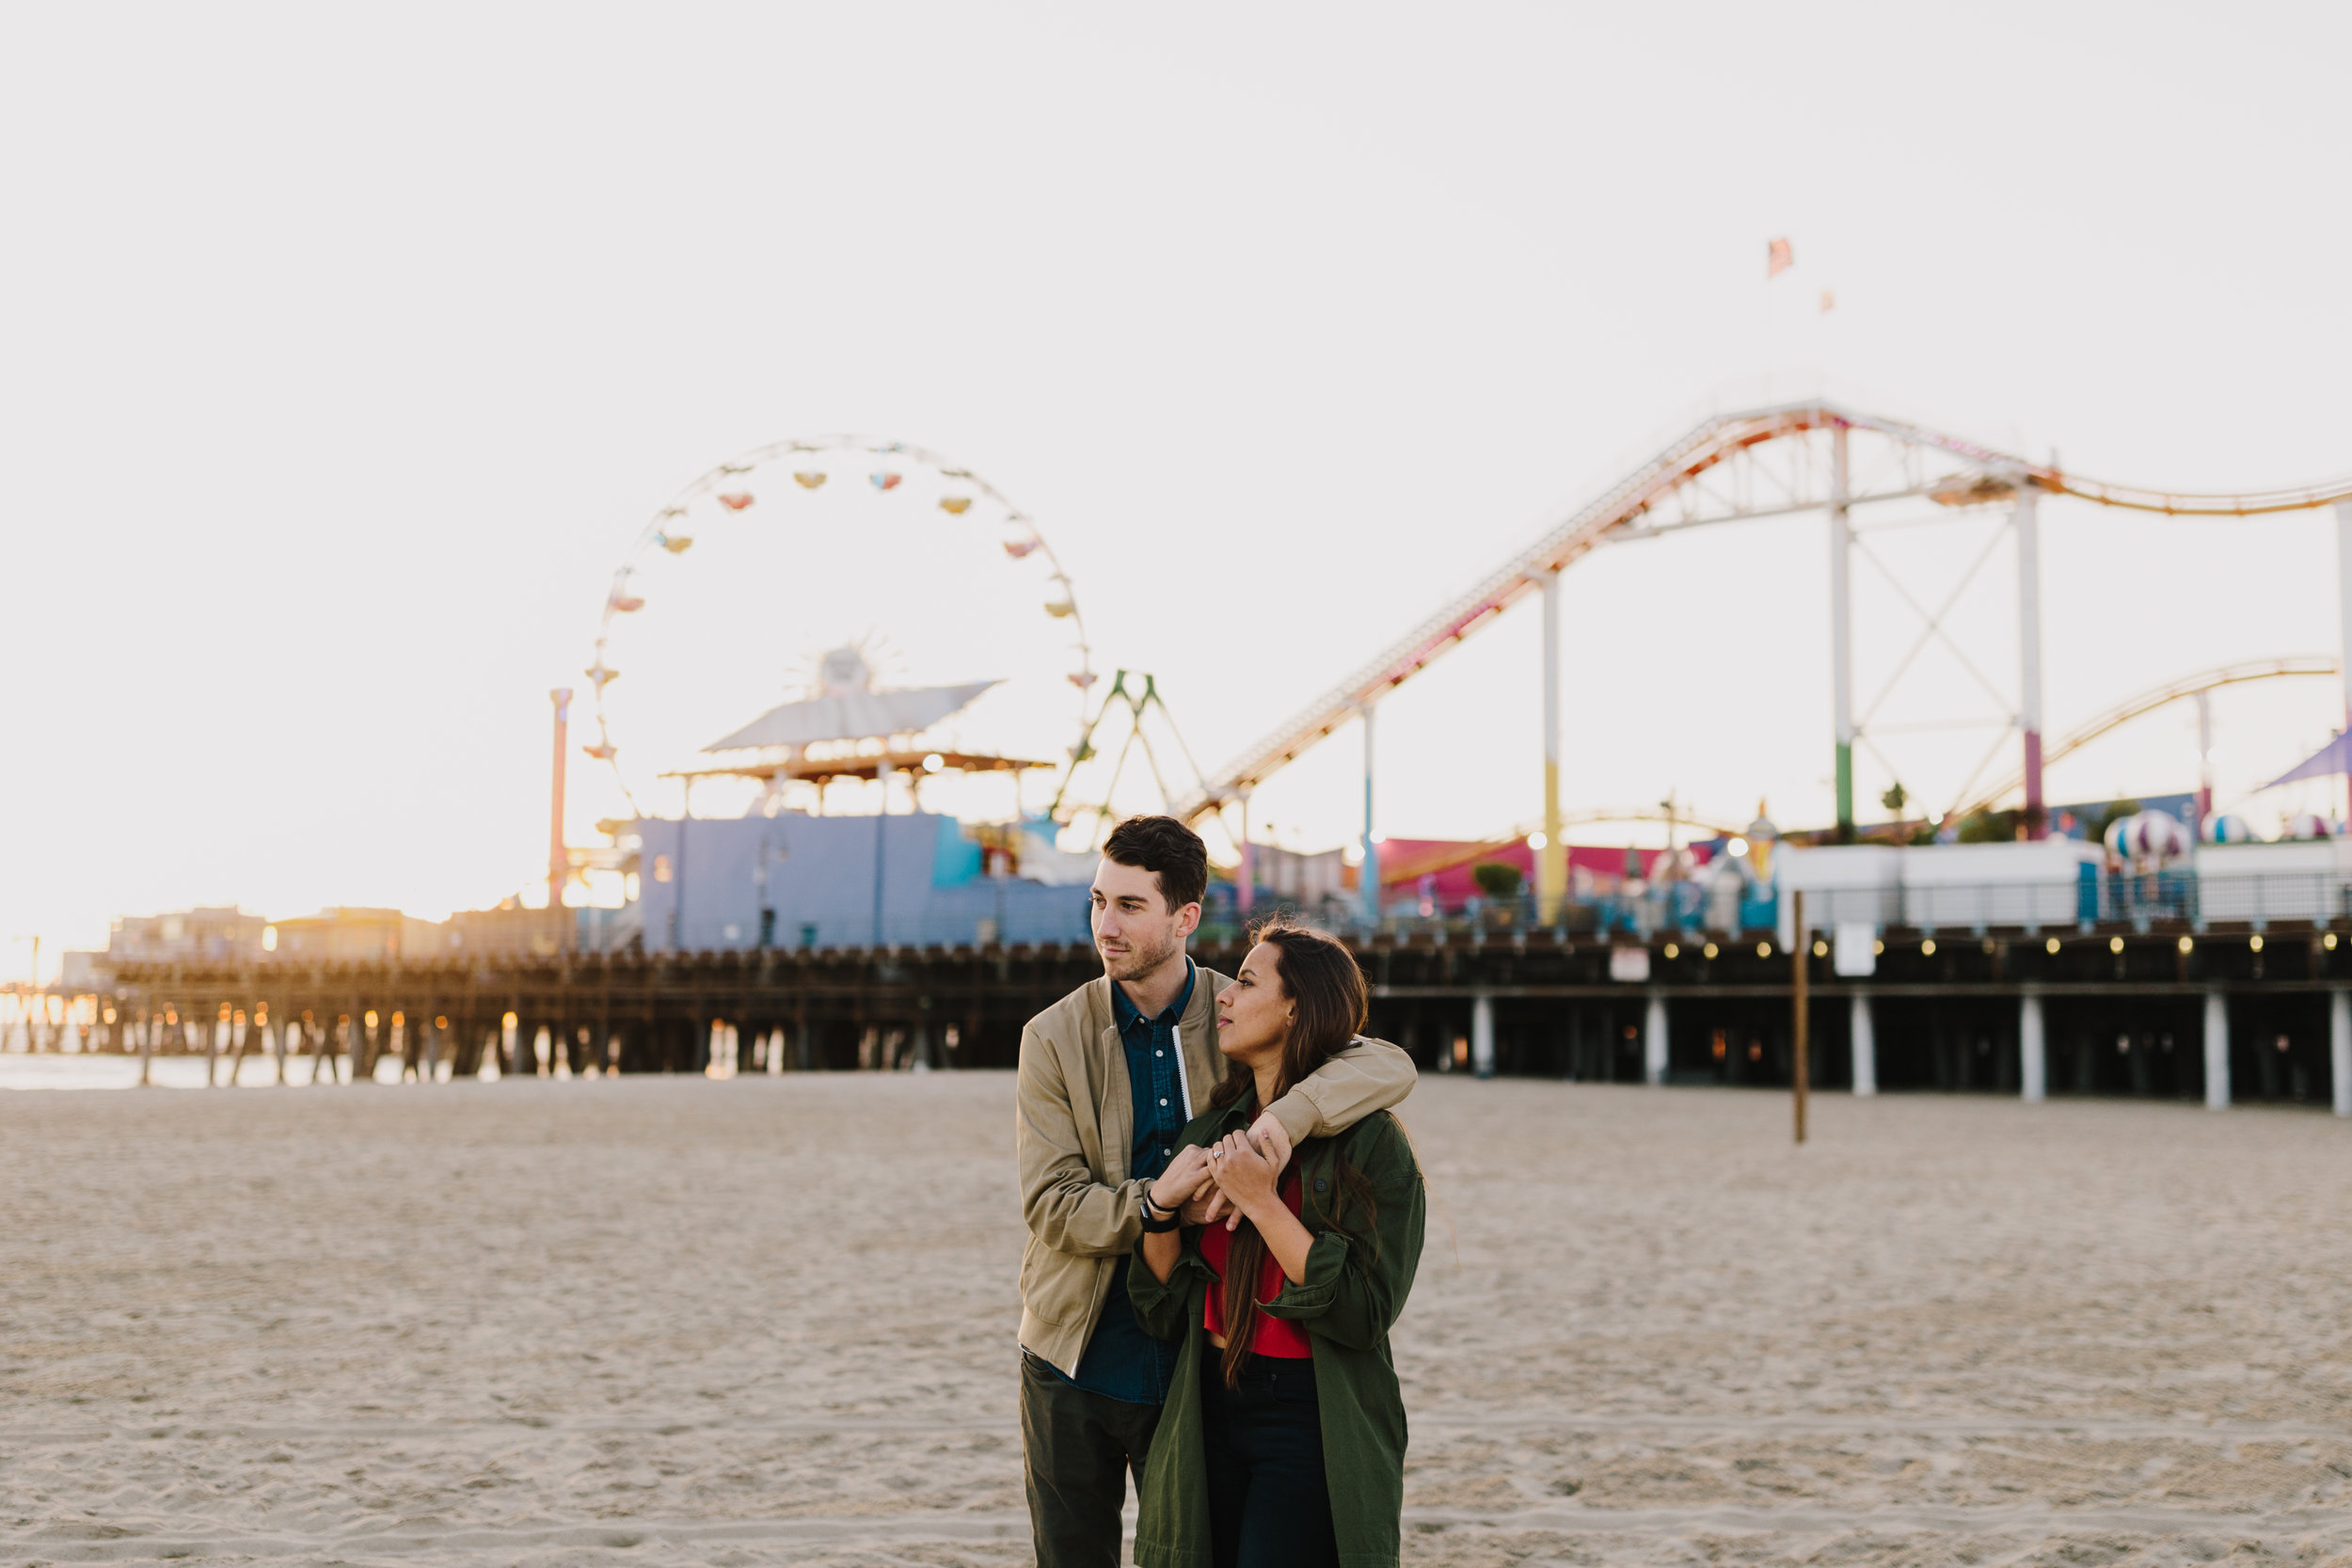 alyssa barletter photography santa monica pier engagement photographer sunset photos-11.jpg